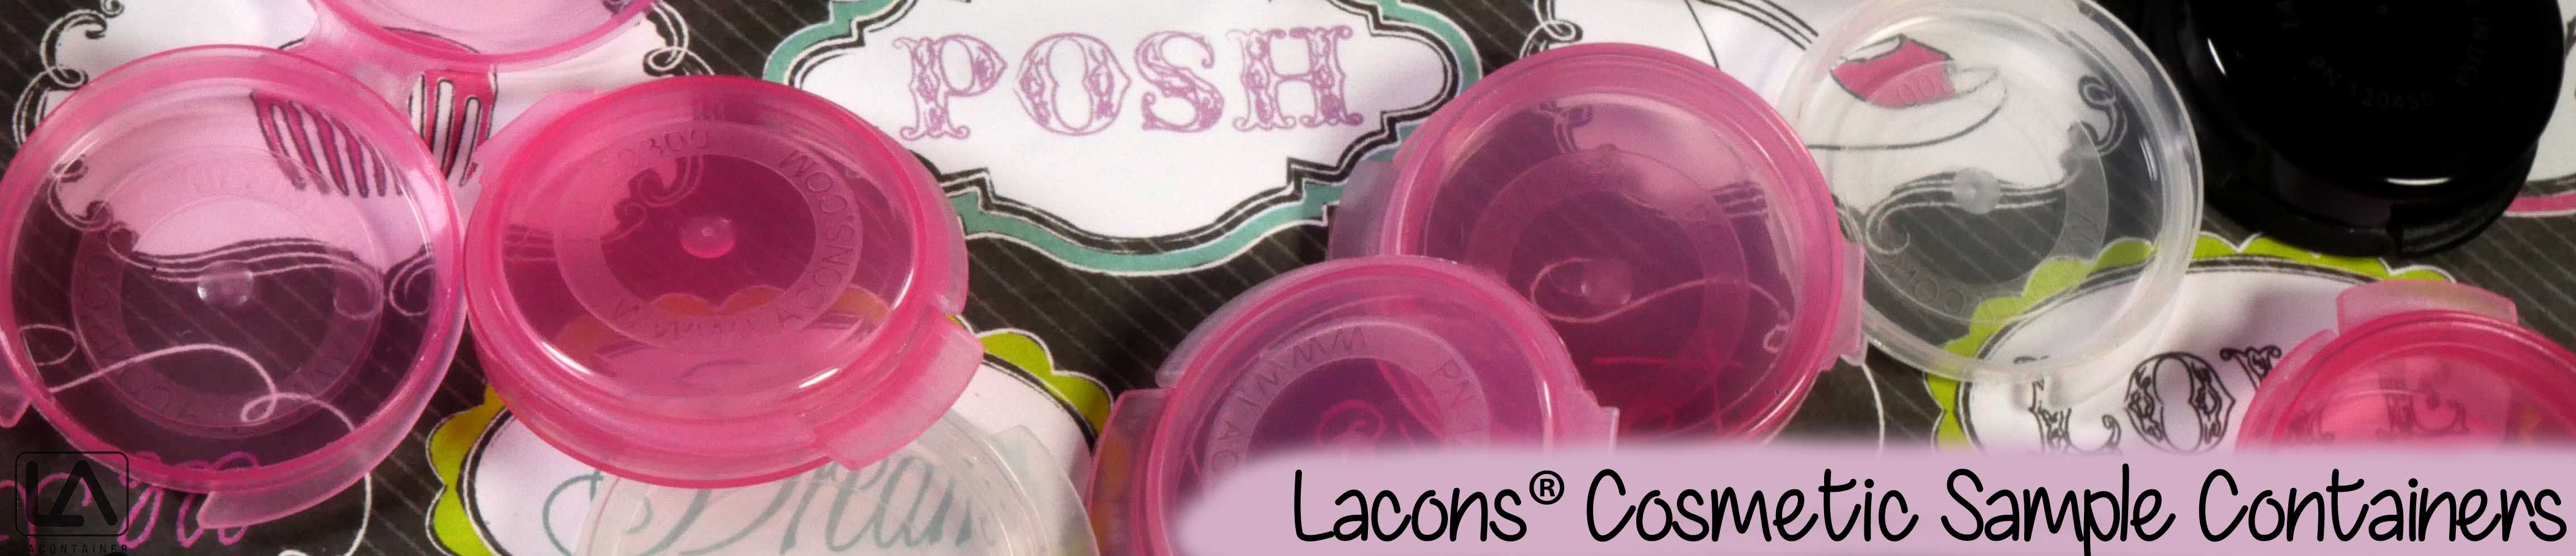 Lacons cosmetic beauty sample containers